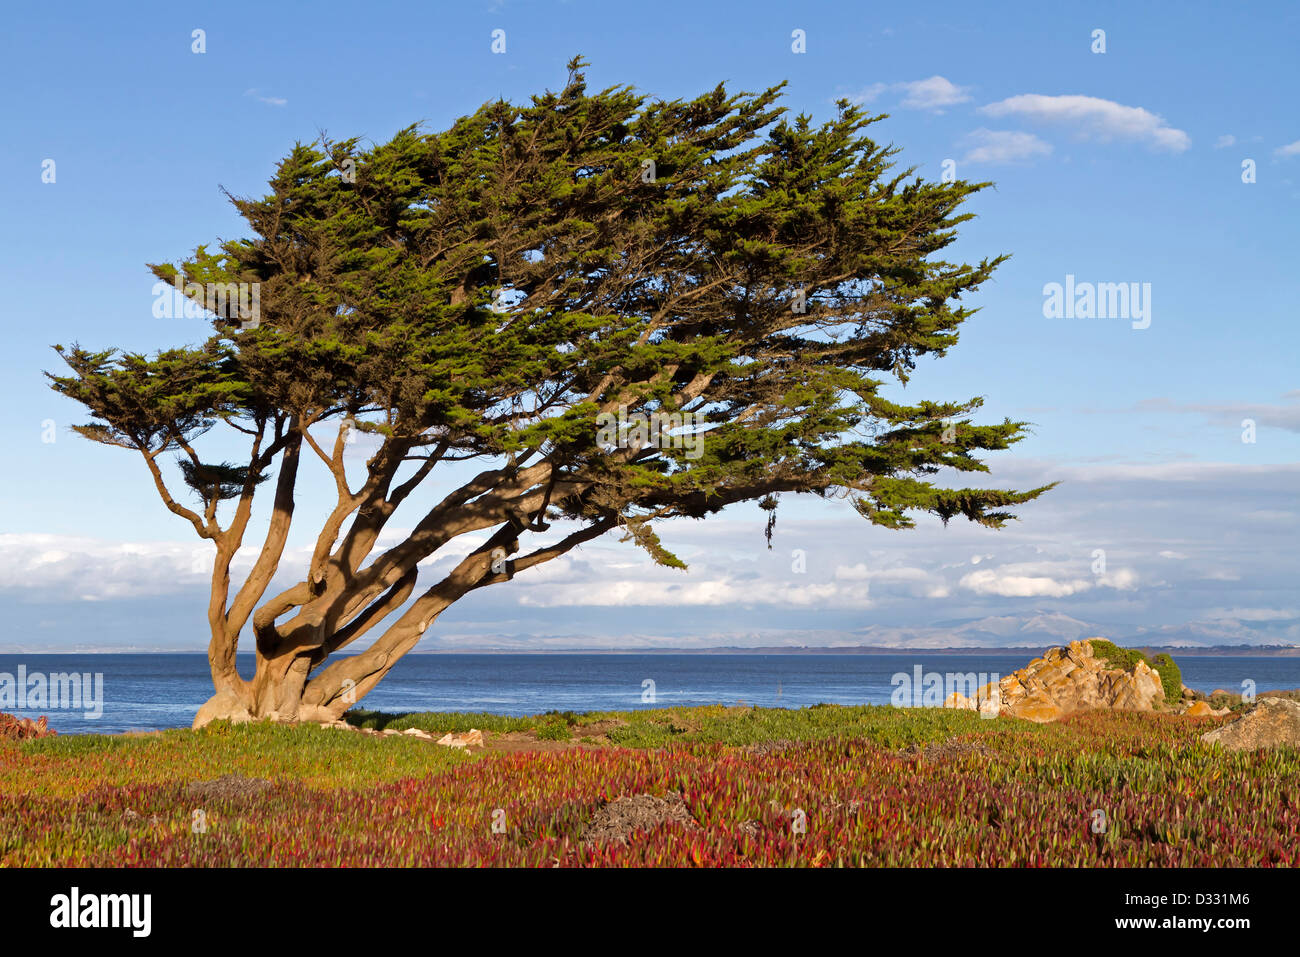 Tree with wind - Stock Image